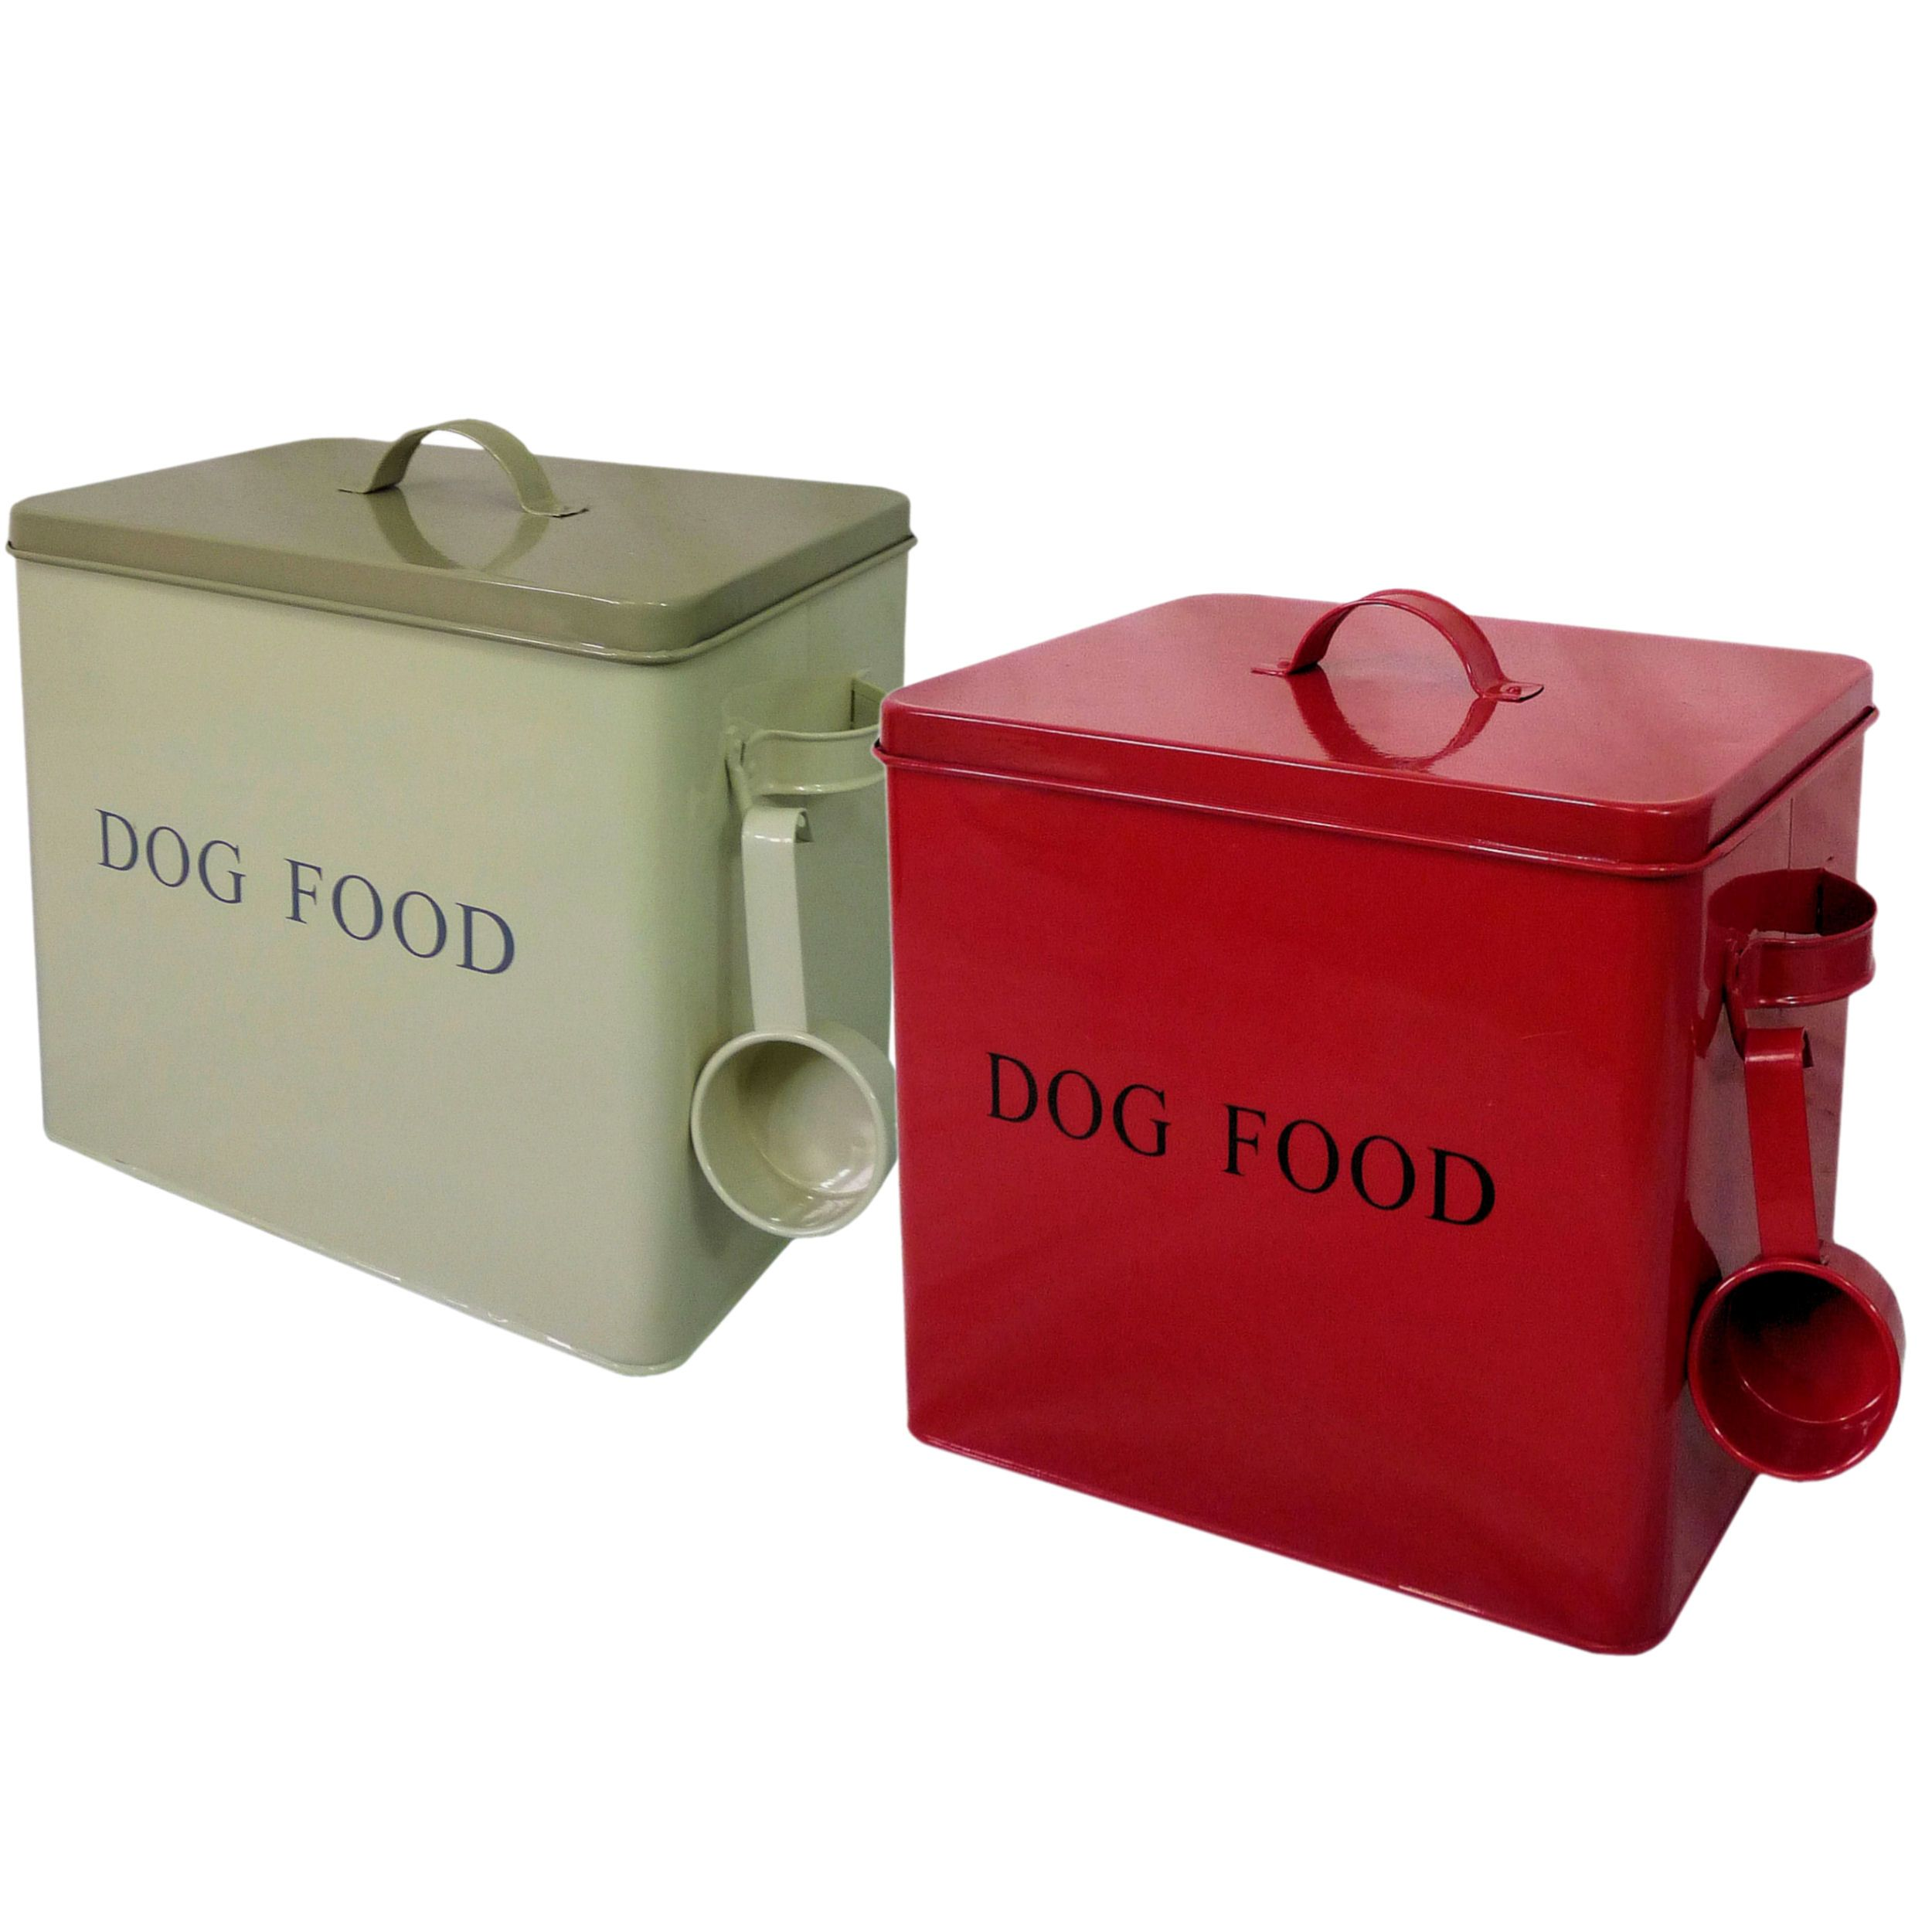 Retro Vintage Enamel Dog Puppy Dry Food Storage Box Container Tin with Scoop  sc 1 st  Pinterest & Retro Vintage Enamel Dog Puppy Dry Food Storage Box Container Tin ...